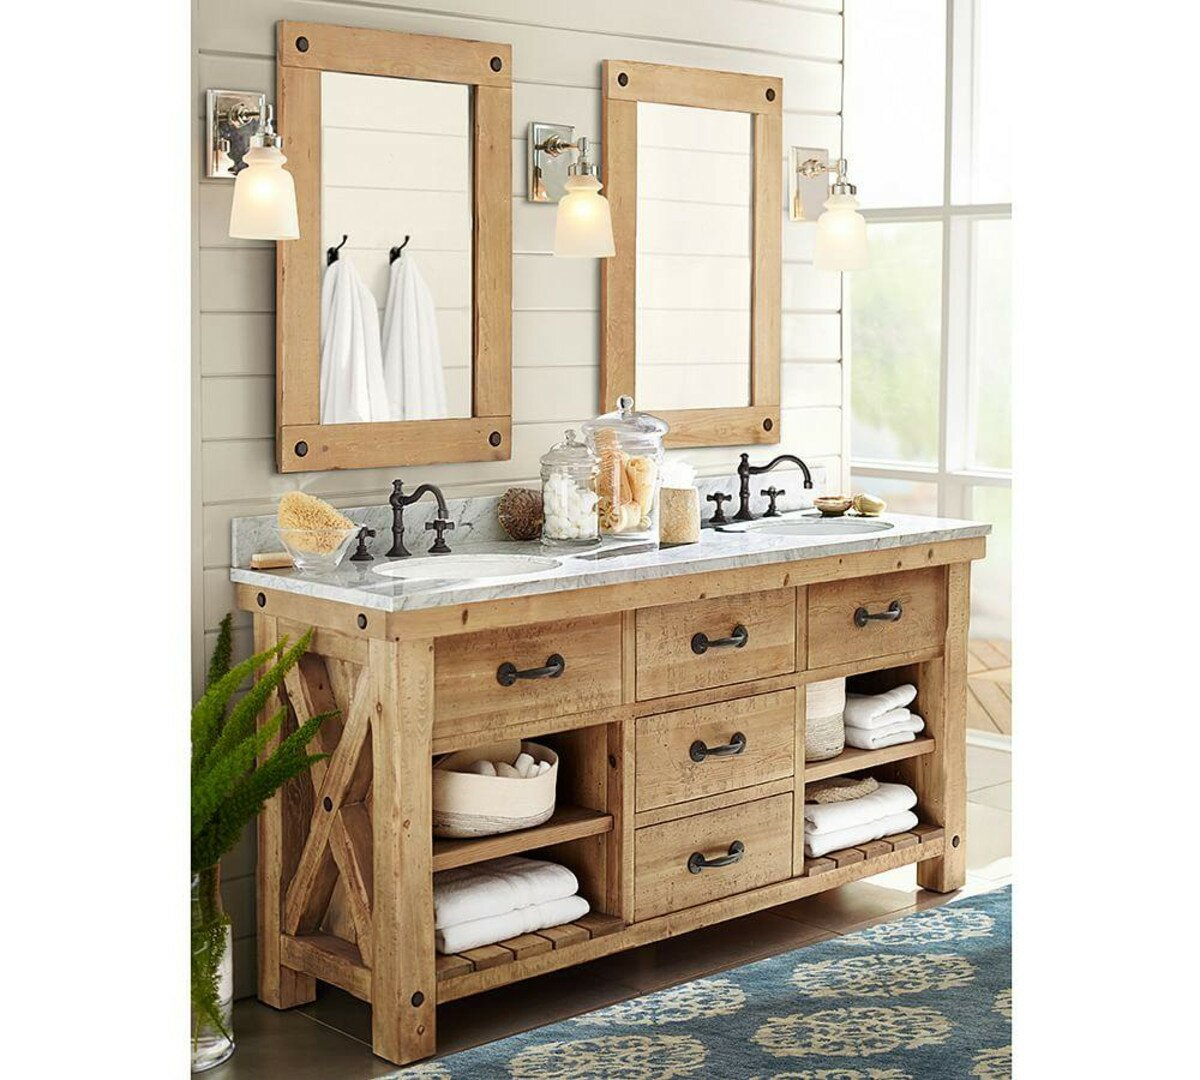 Bathroom pottery barn vanity for bathroom cabinet design for Bathroom cabinet designs photos